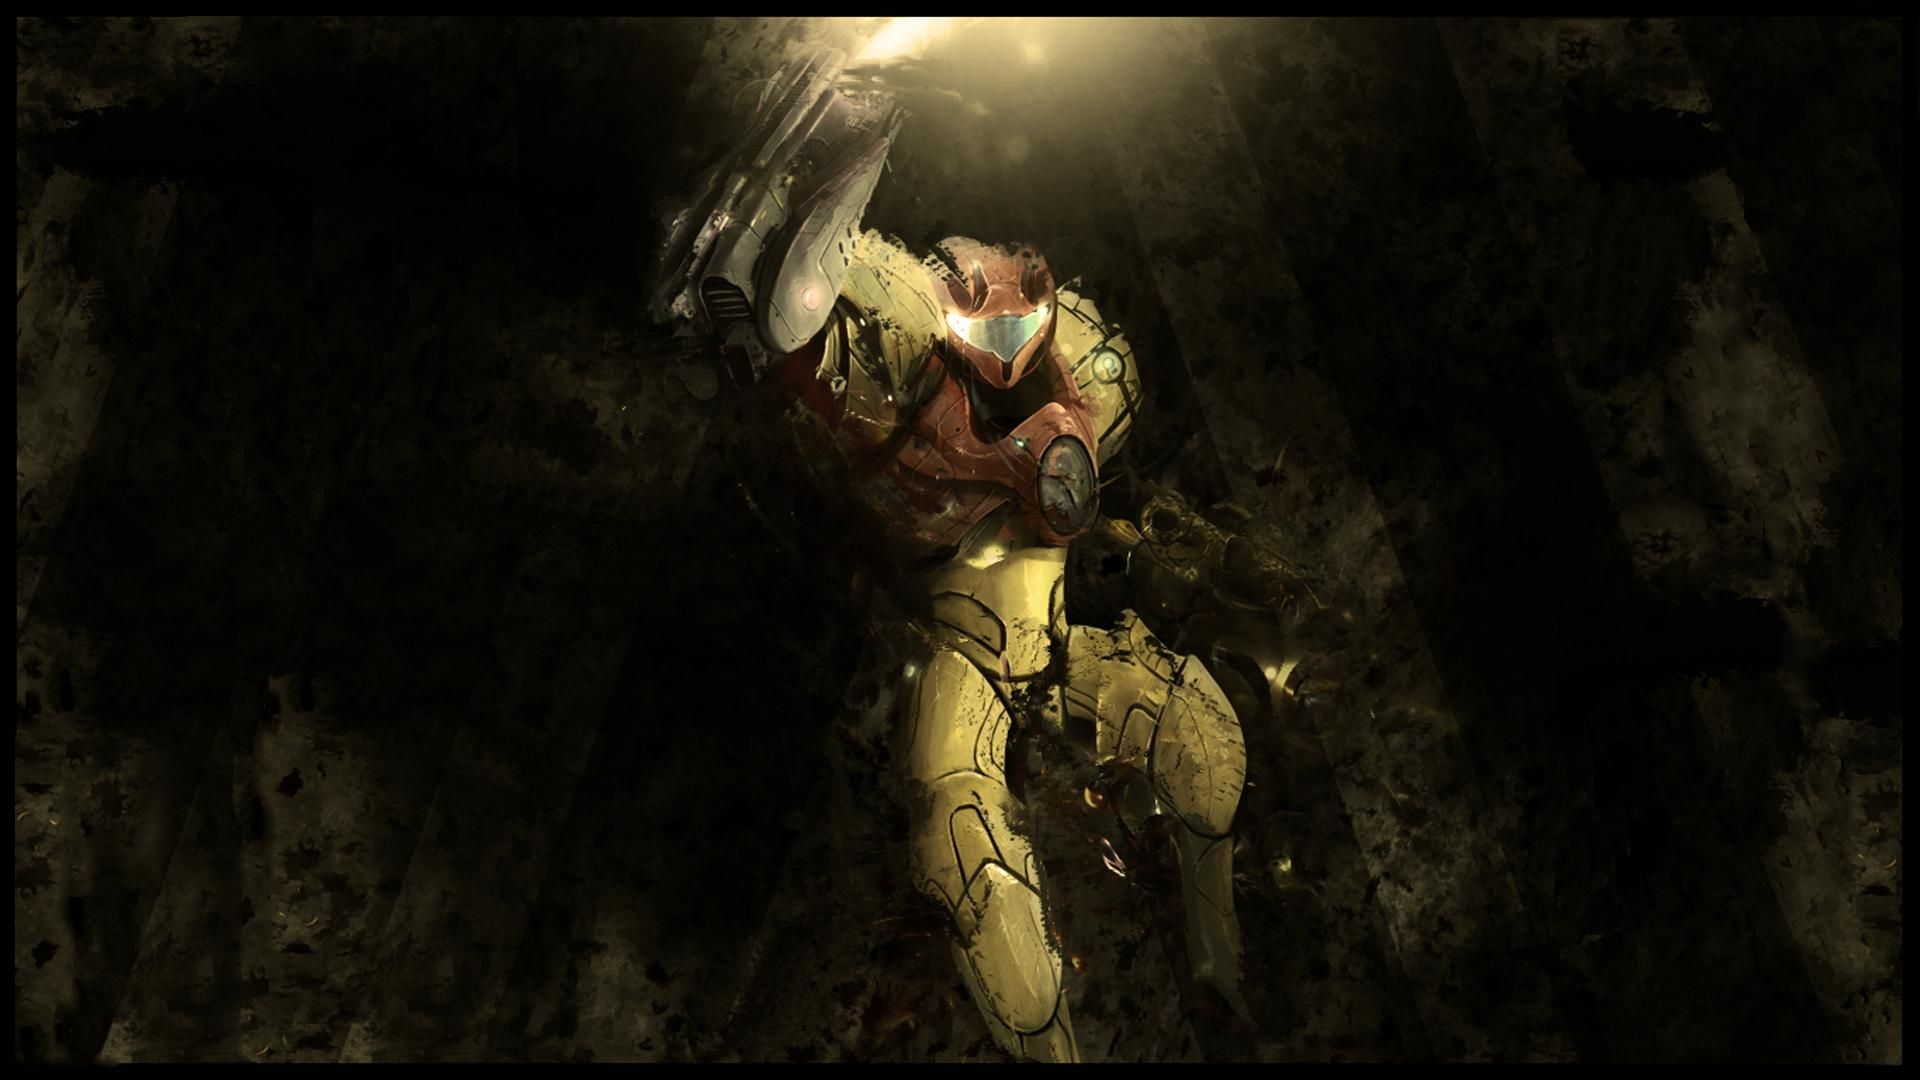 View Download Comment And Rate This 1920x1080 Metroid Wallpaper